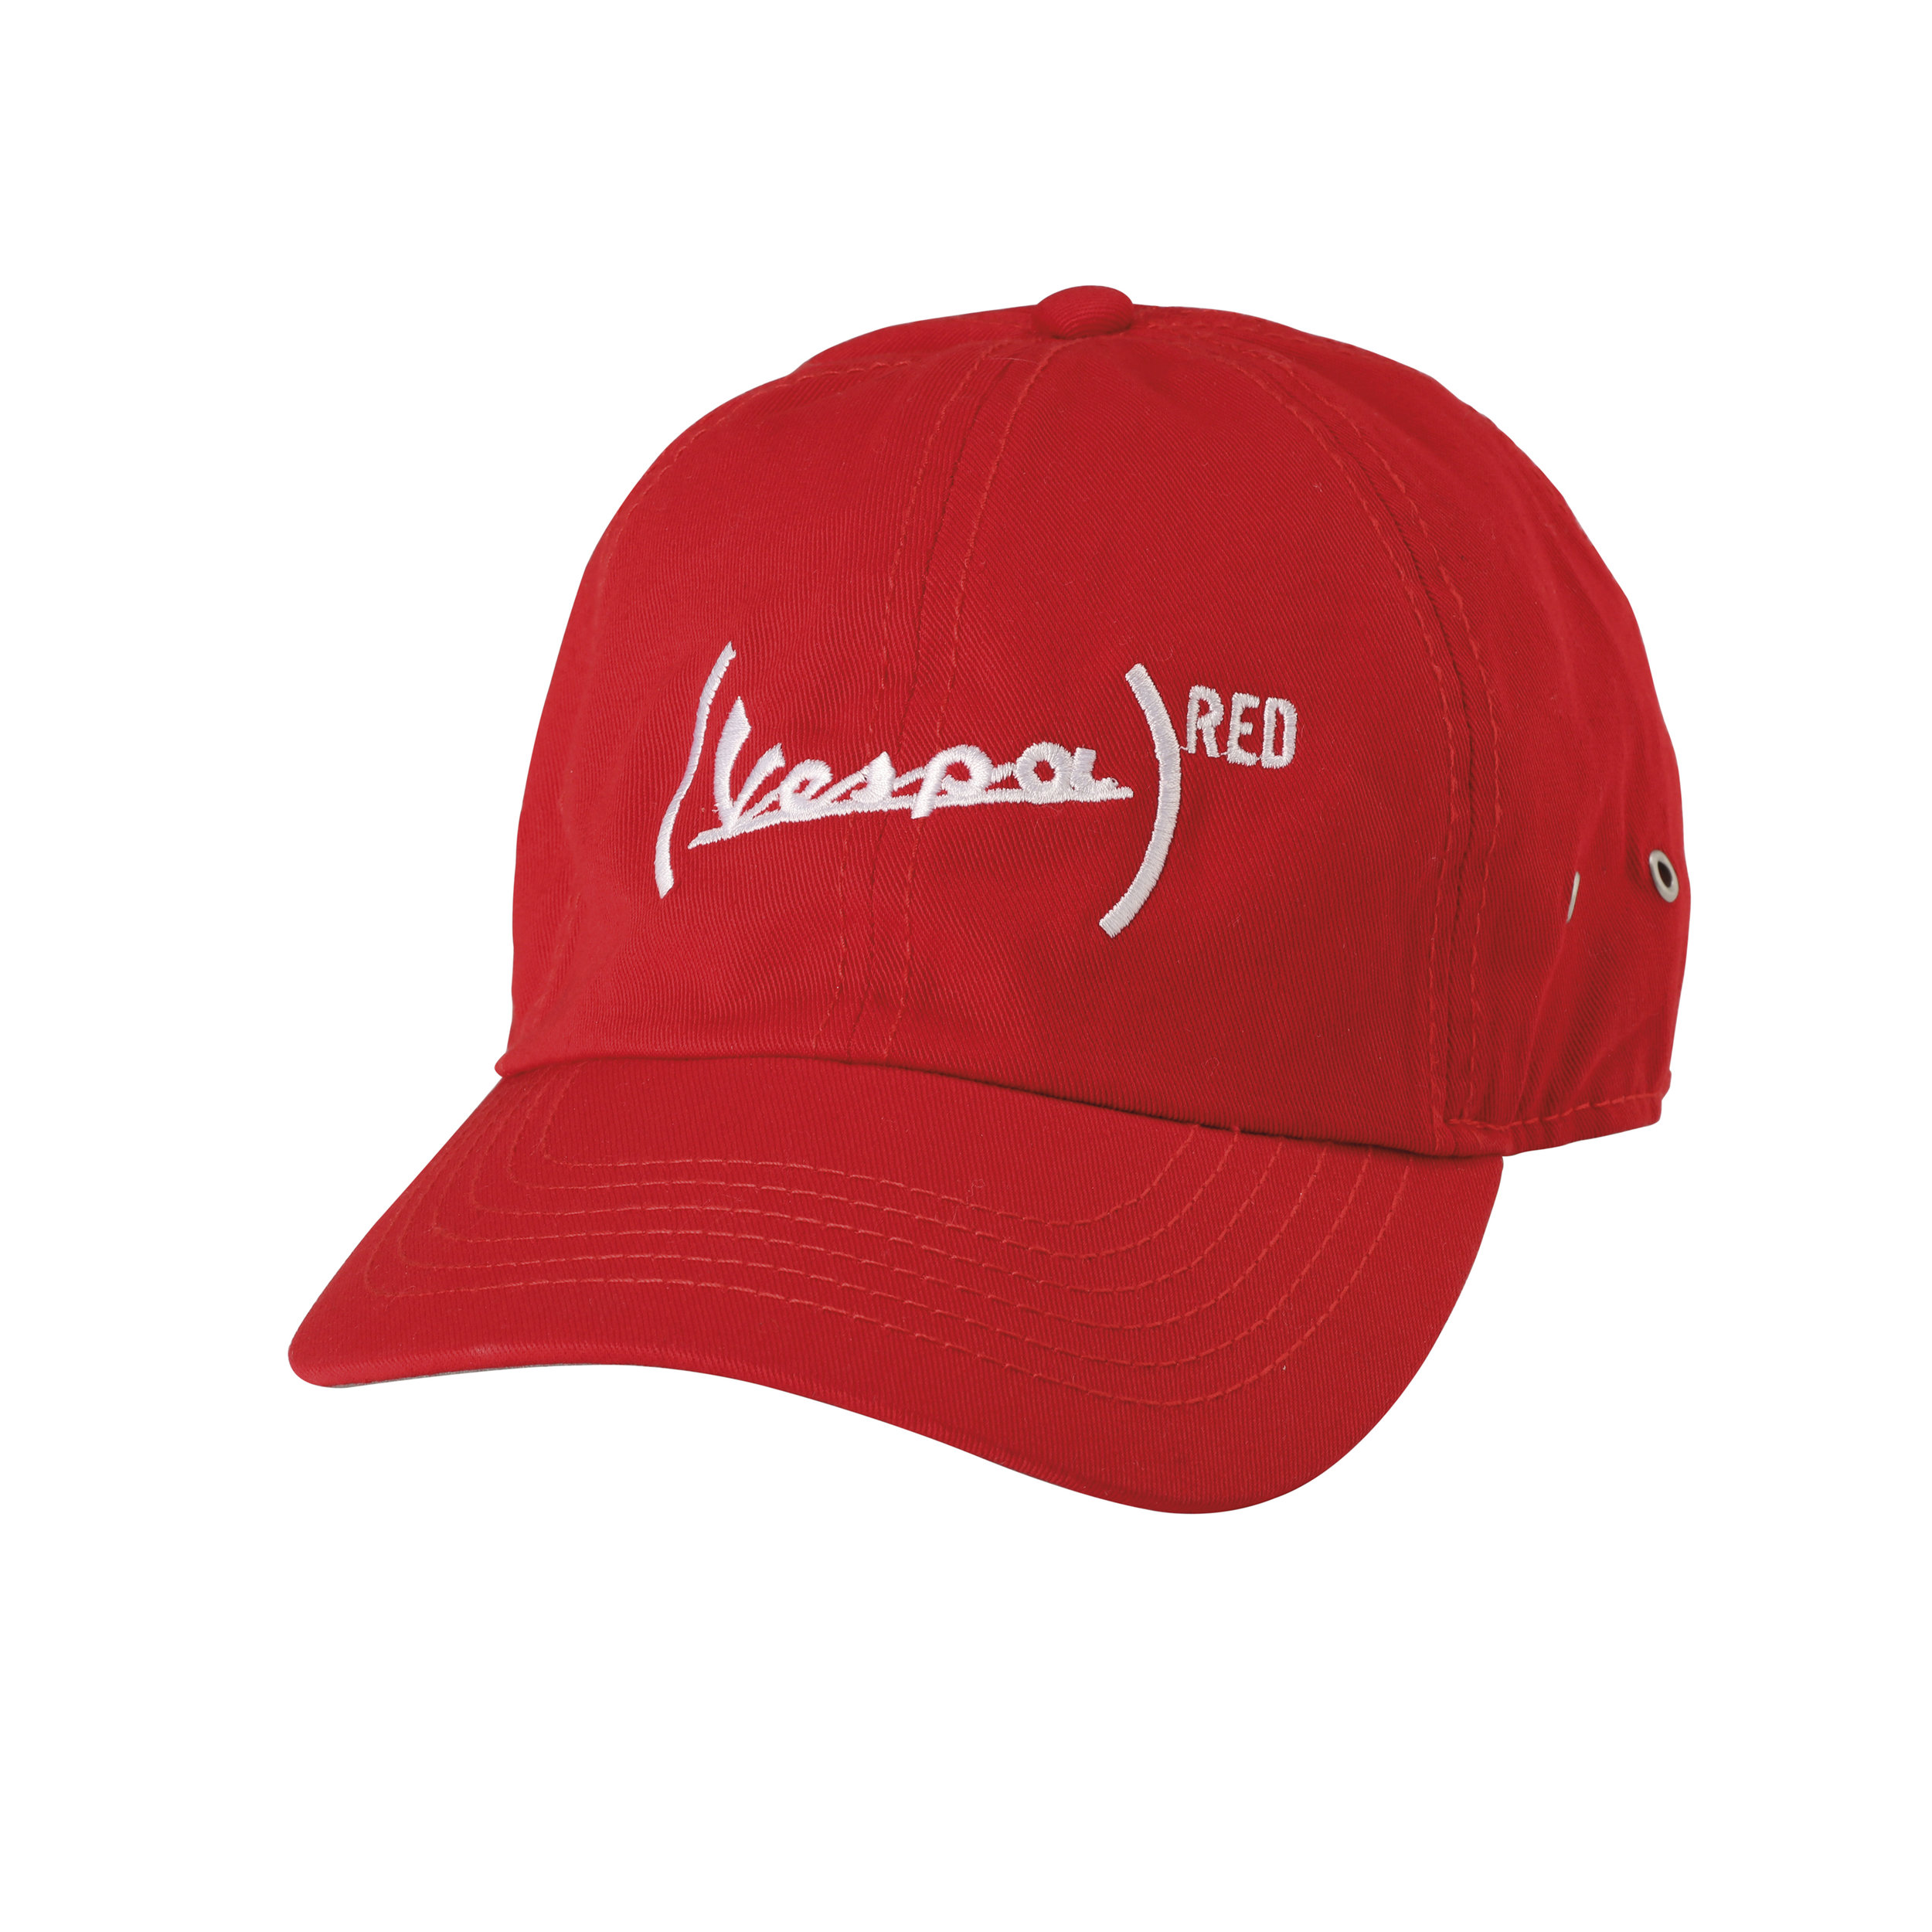 (Vespa 946) RED_Merchandising_3.jpg